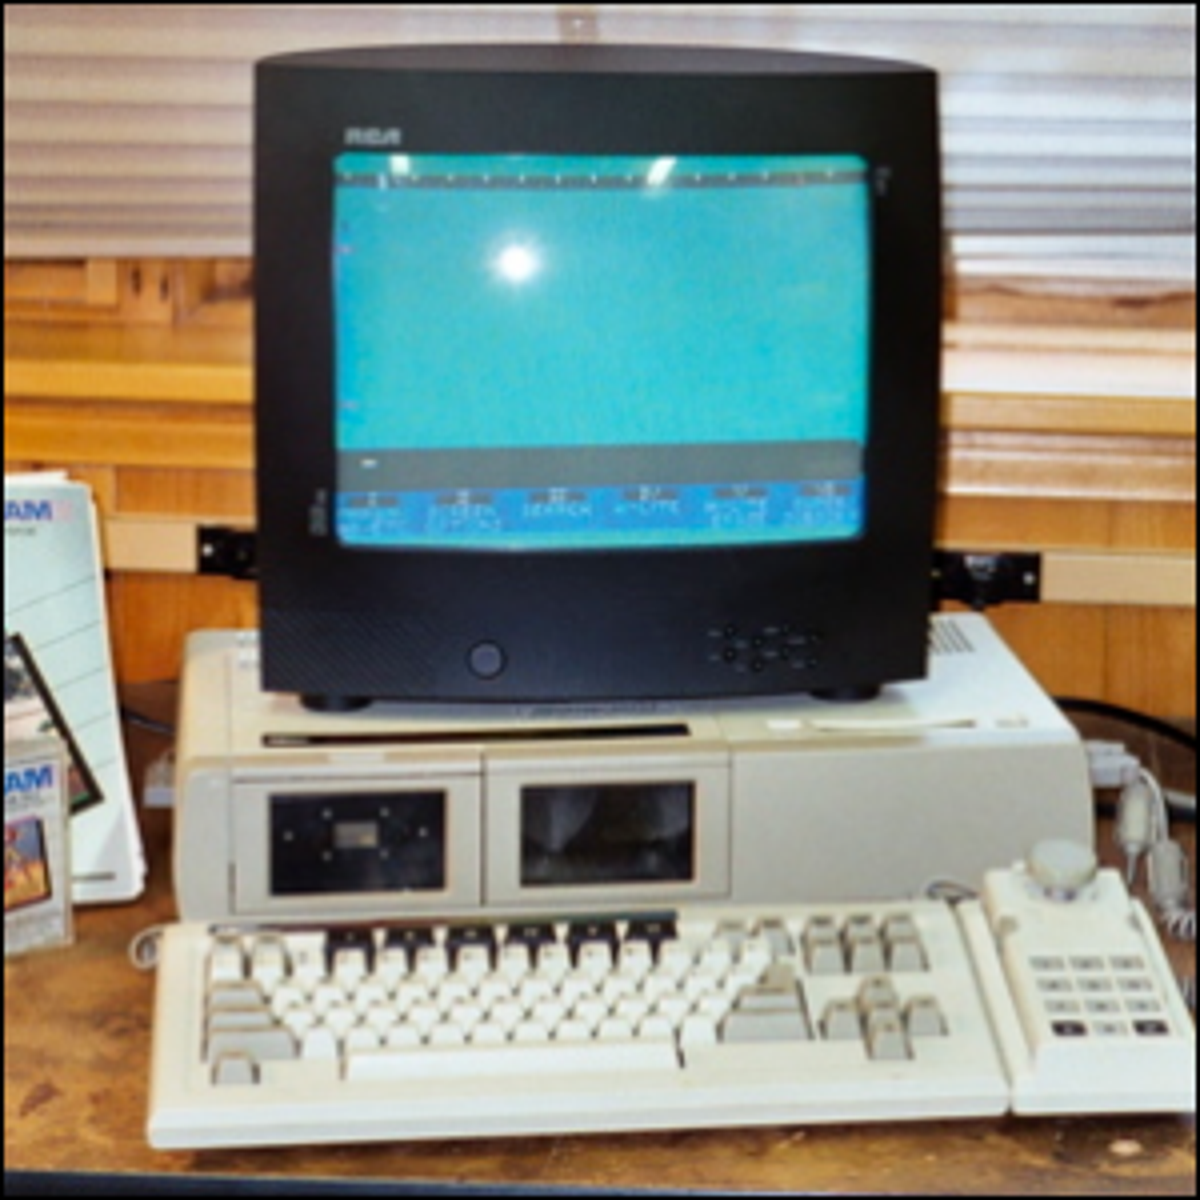 A Coleco Adam with a monitor, keyboard, printer, and software.